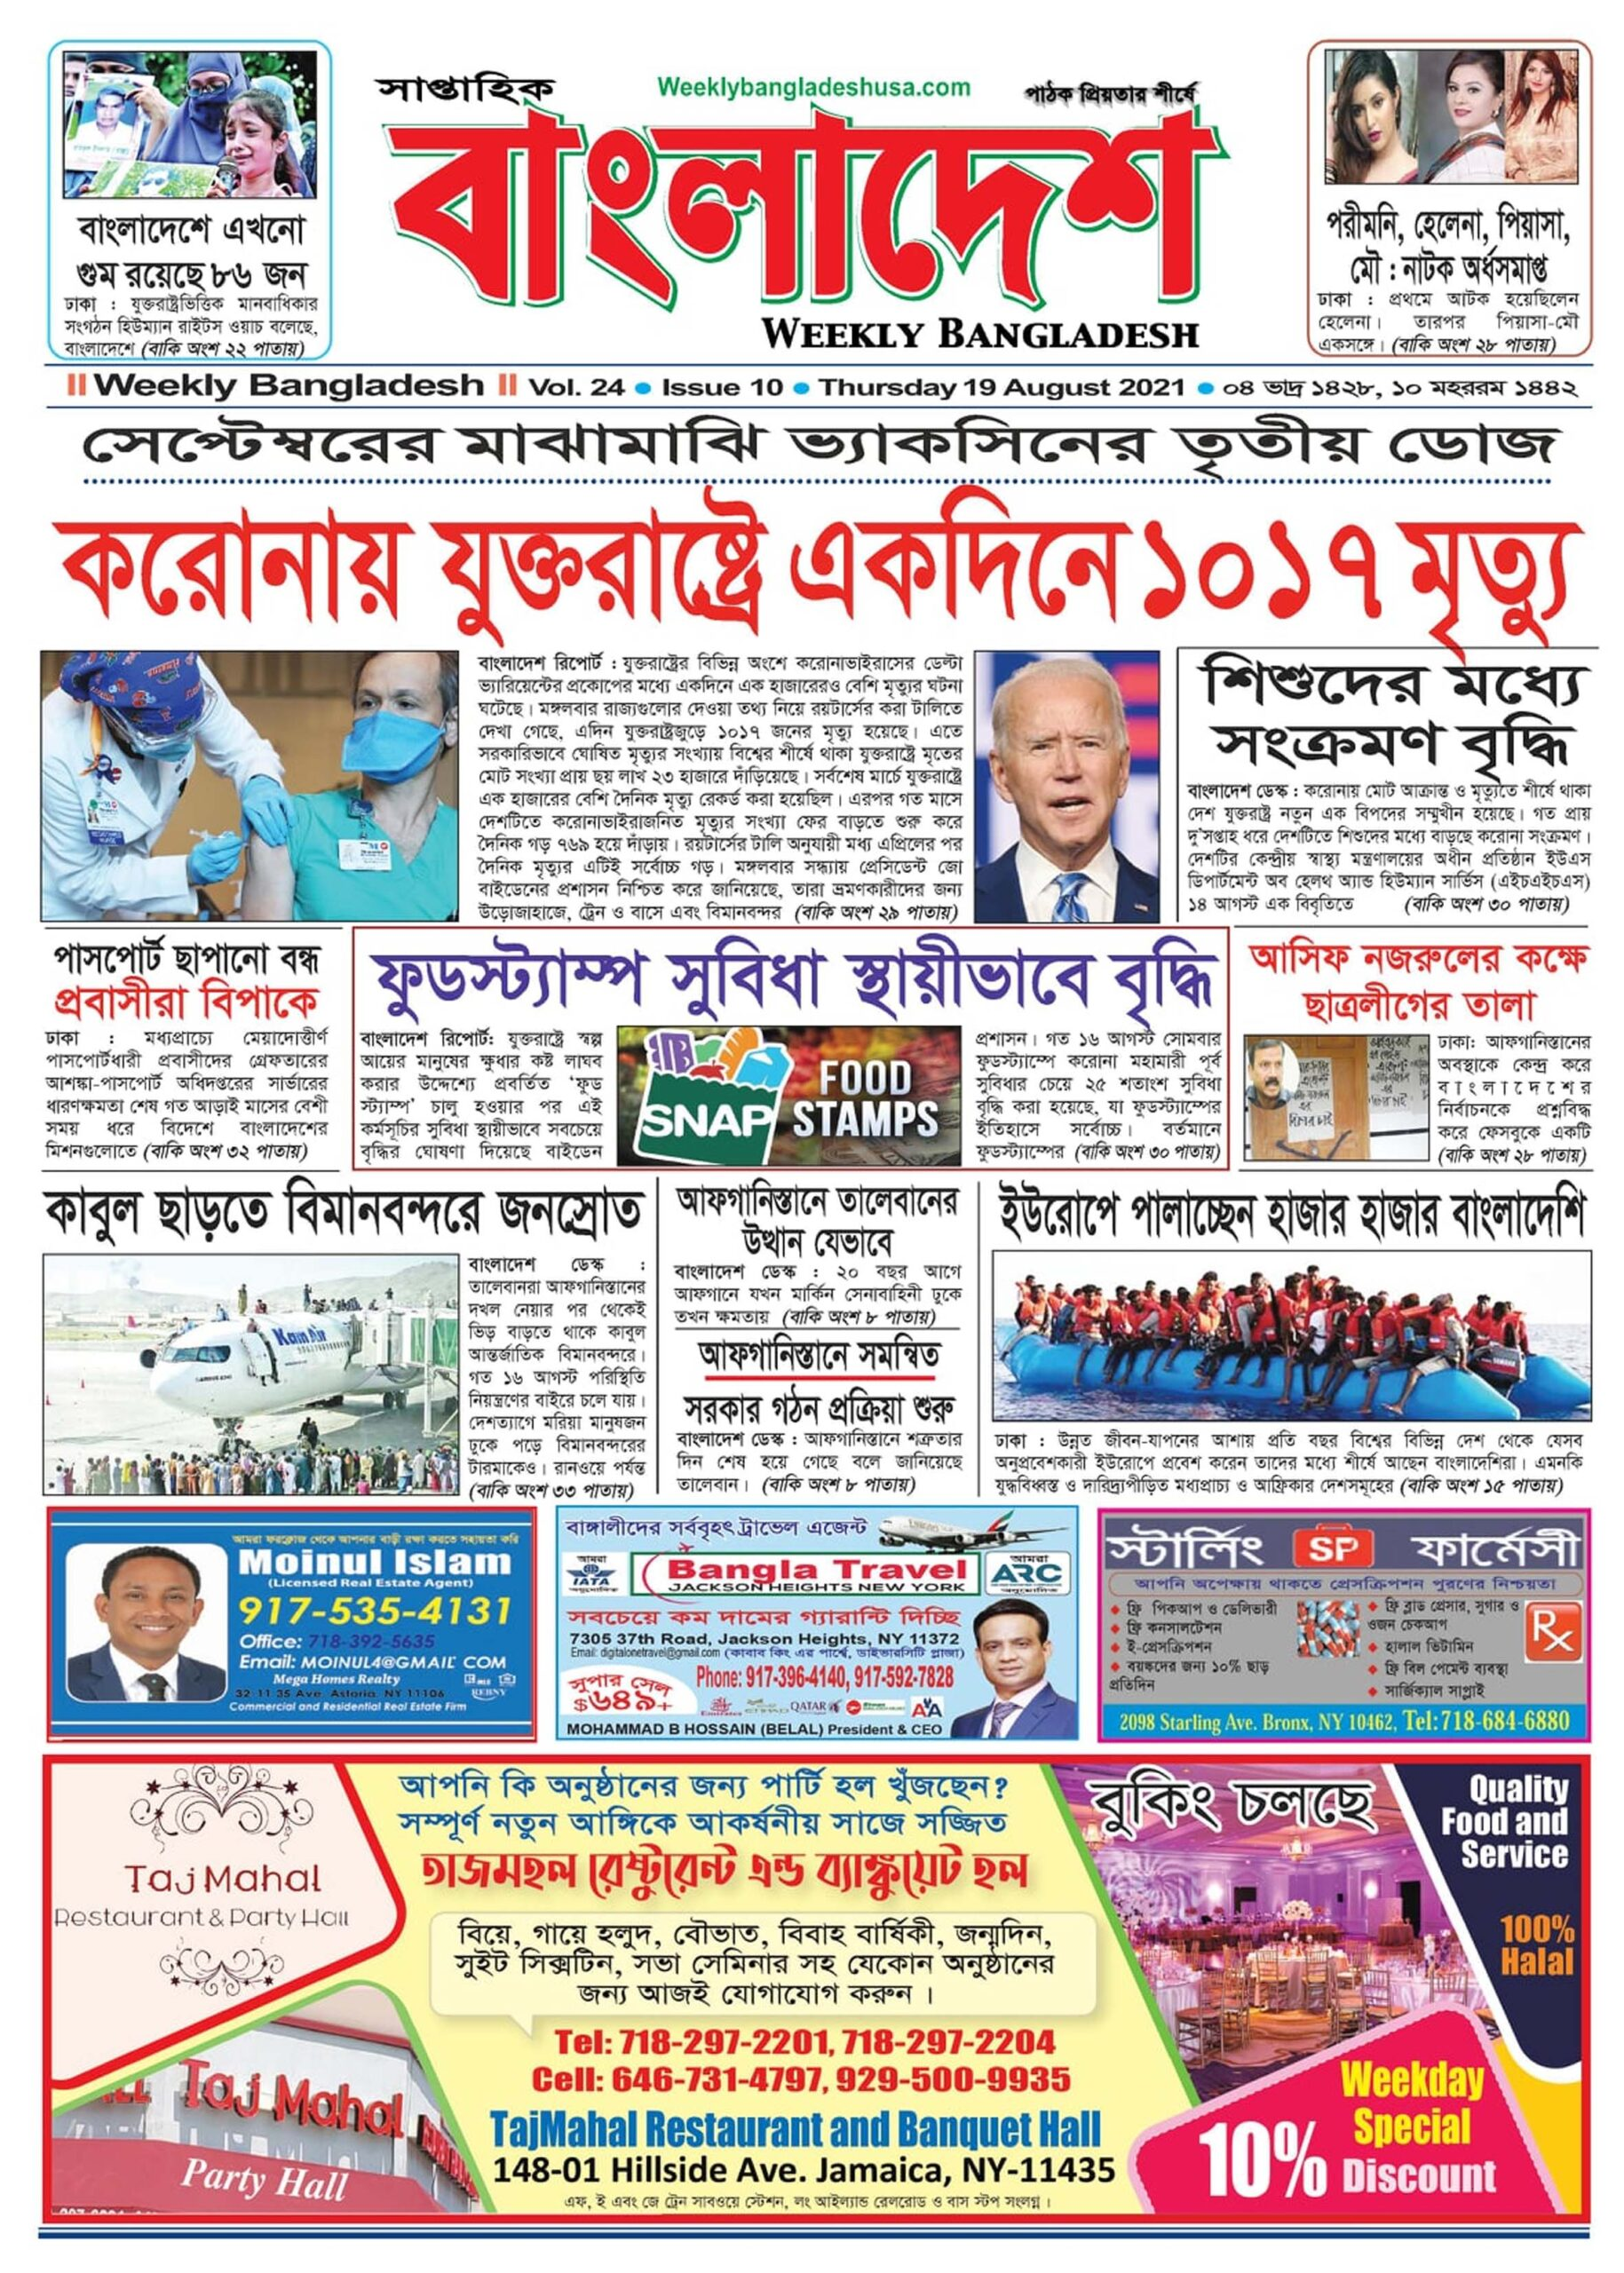 VOL 24, ISSUE 10, 19 August 2021